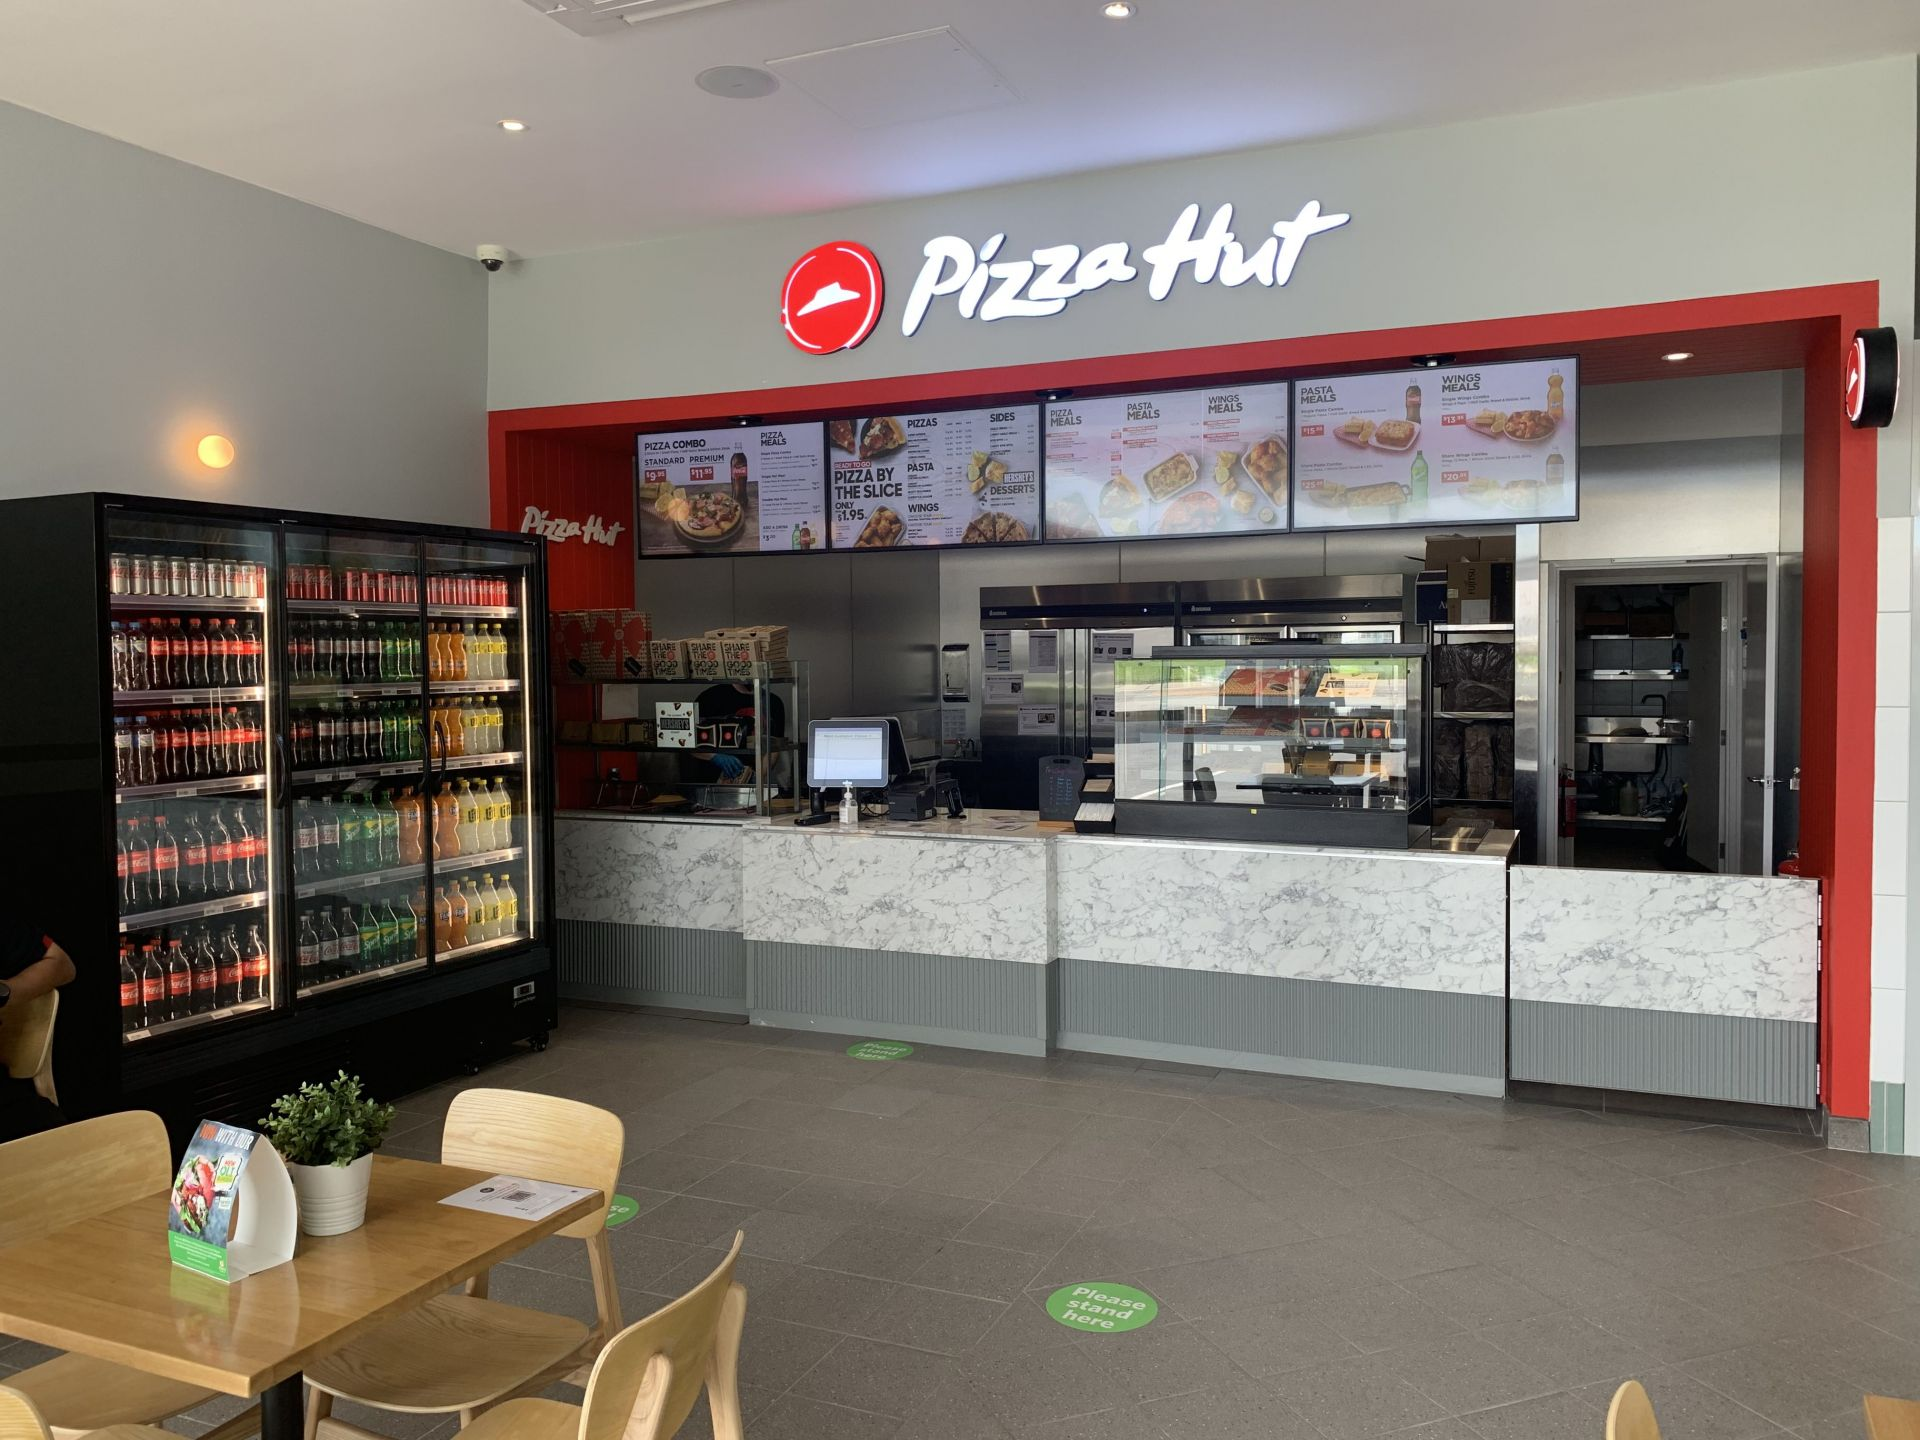 Pizza Hut Australia high franchise rating | Inside Franchise Business Executive